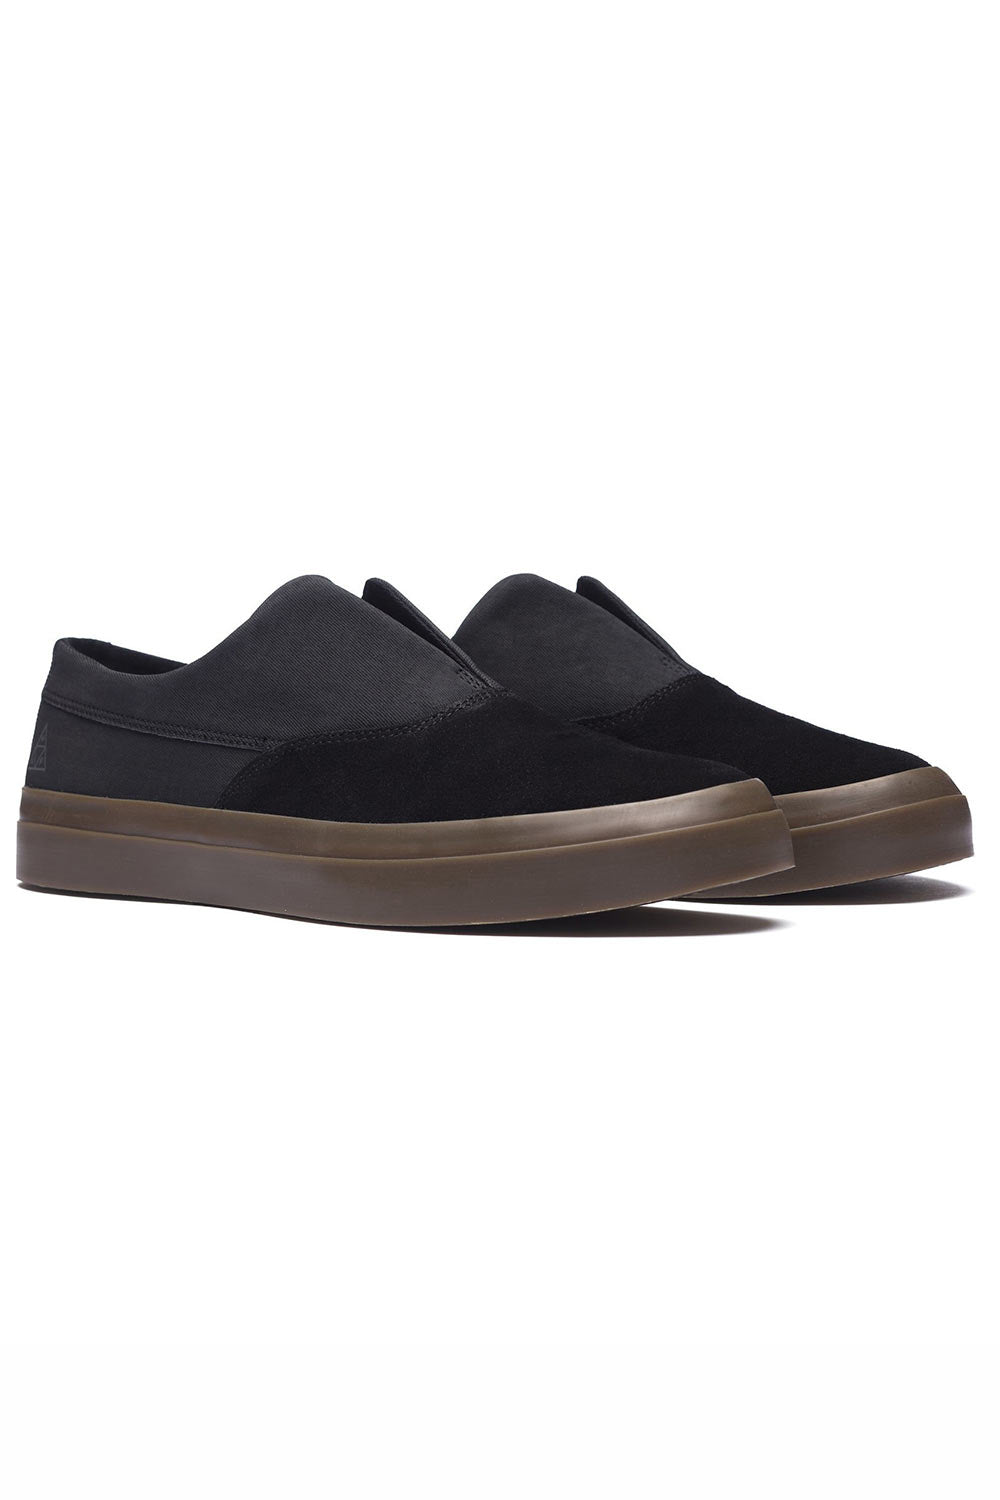 HUF Dylan Slip On - Black/Dark Gum